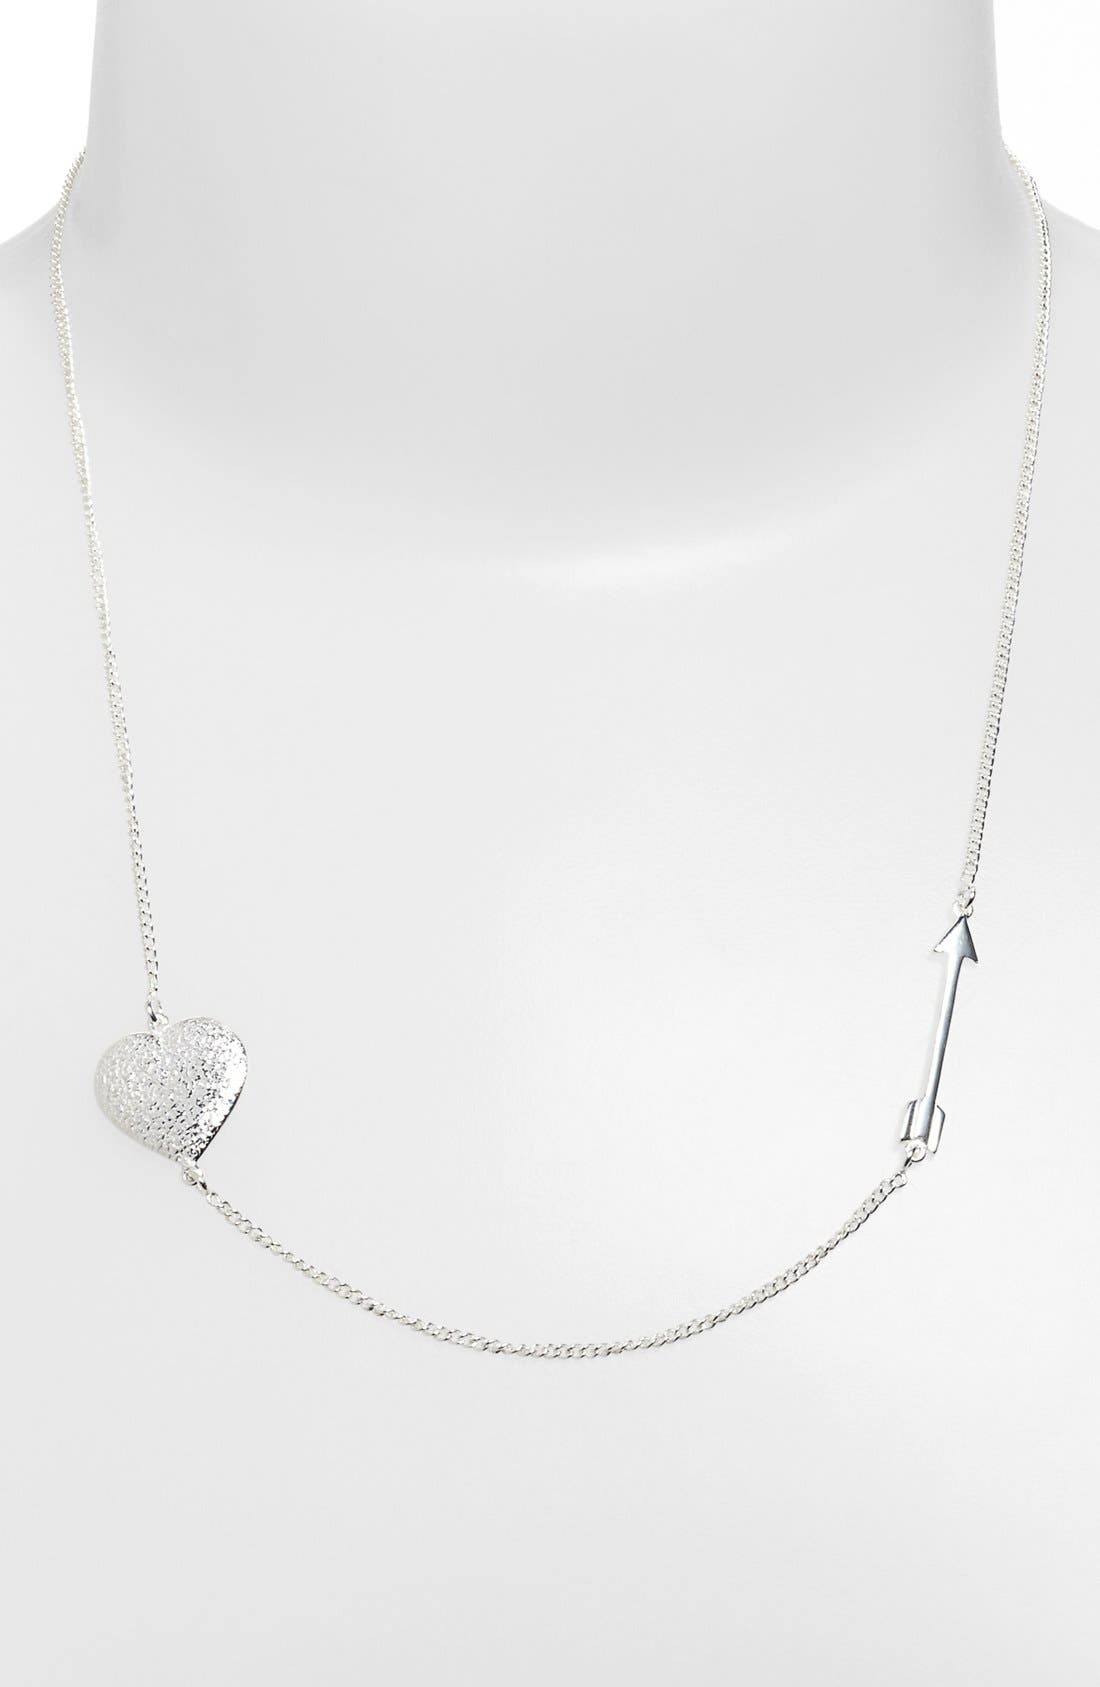 Main Image - Melinda Maria 'Heart & Arrow' Station Necklace (Online Only)